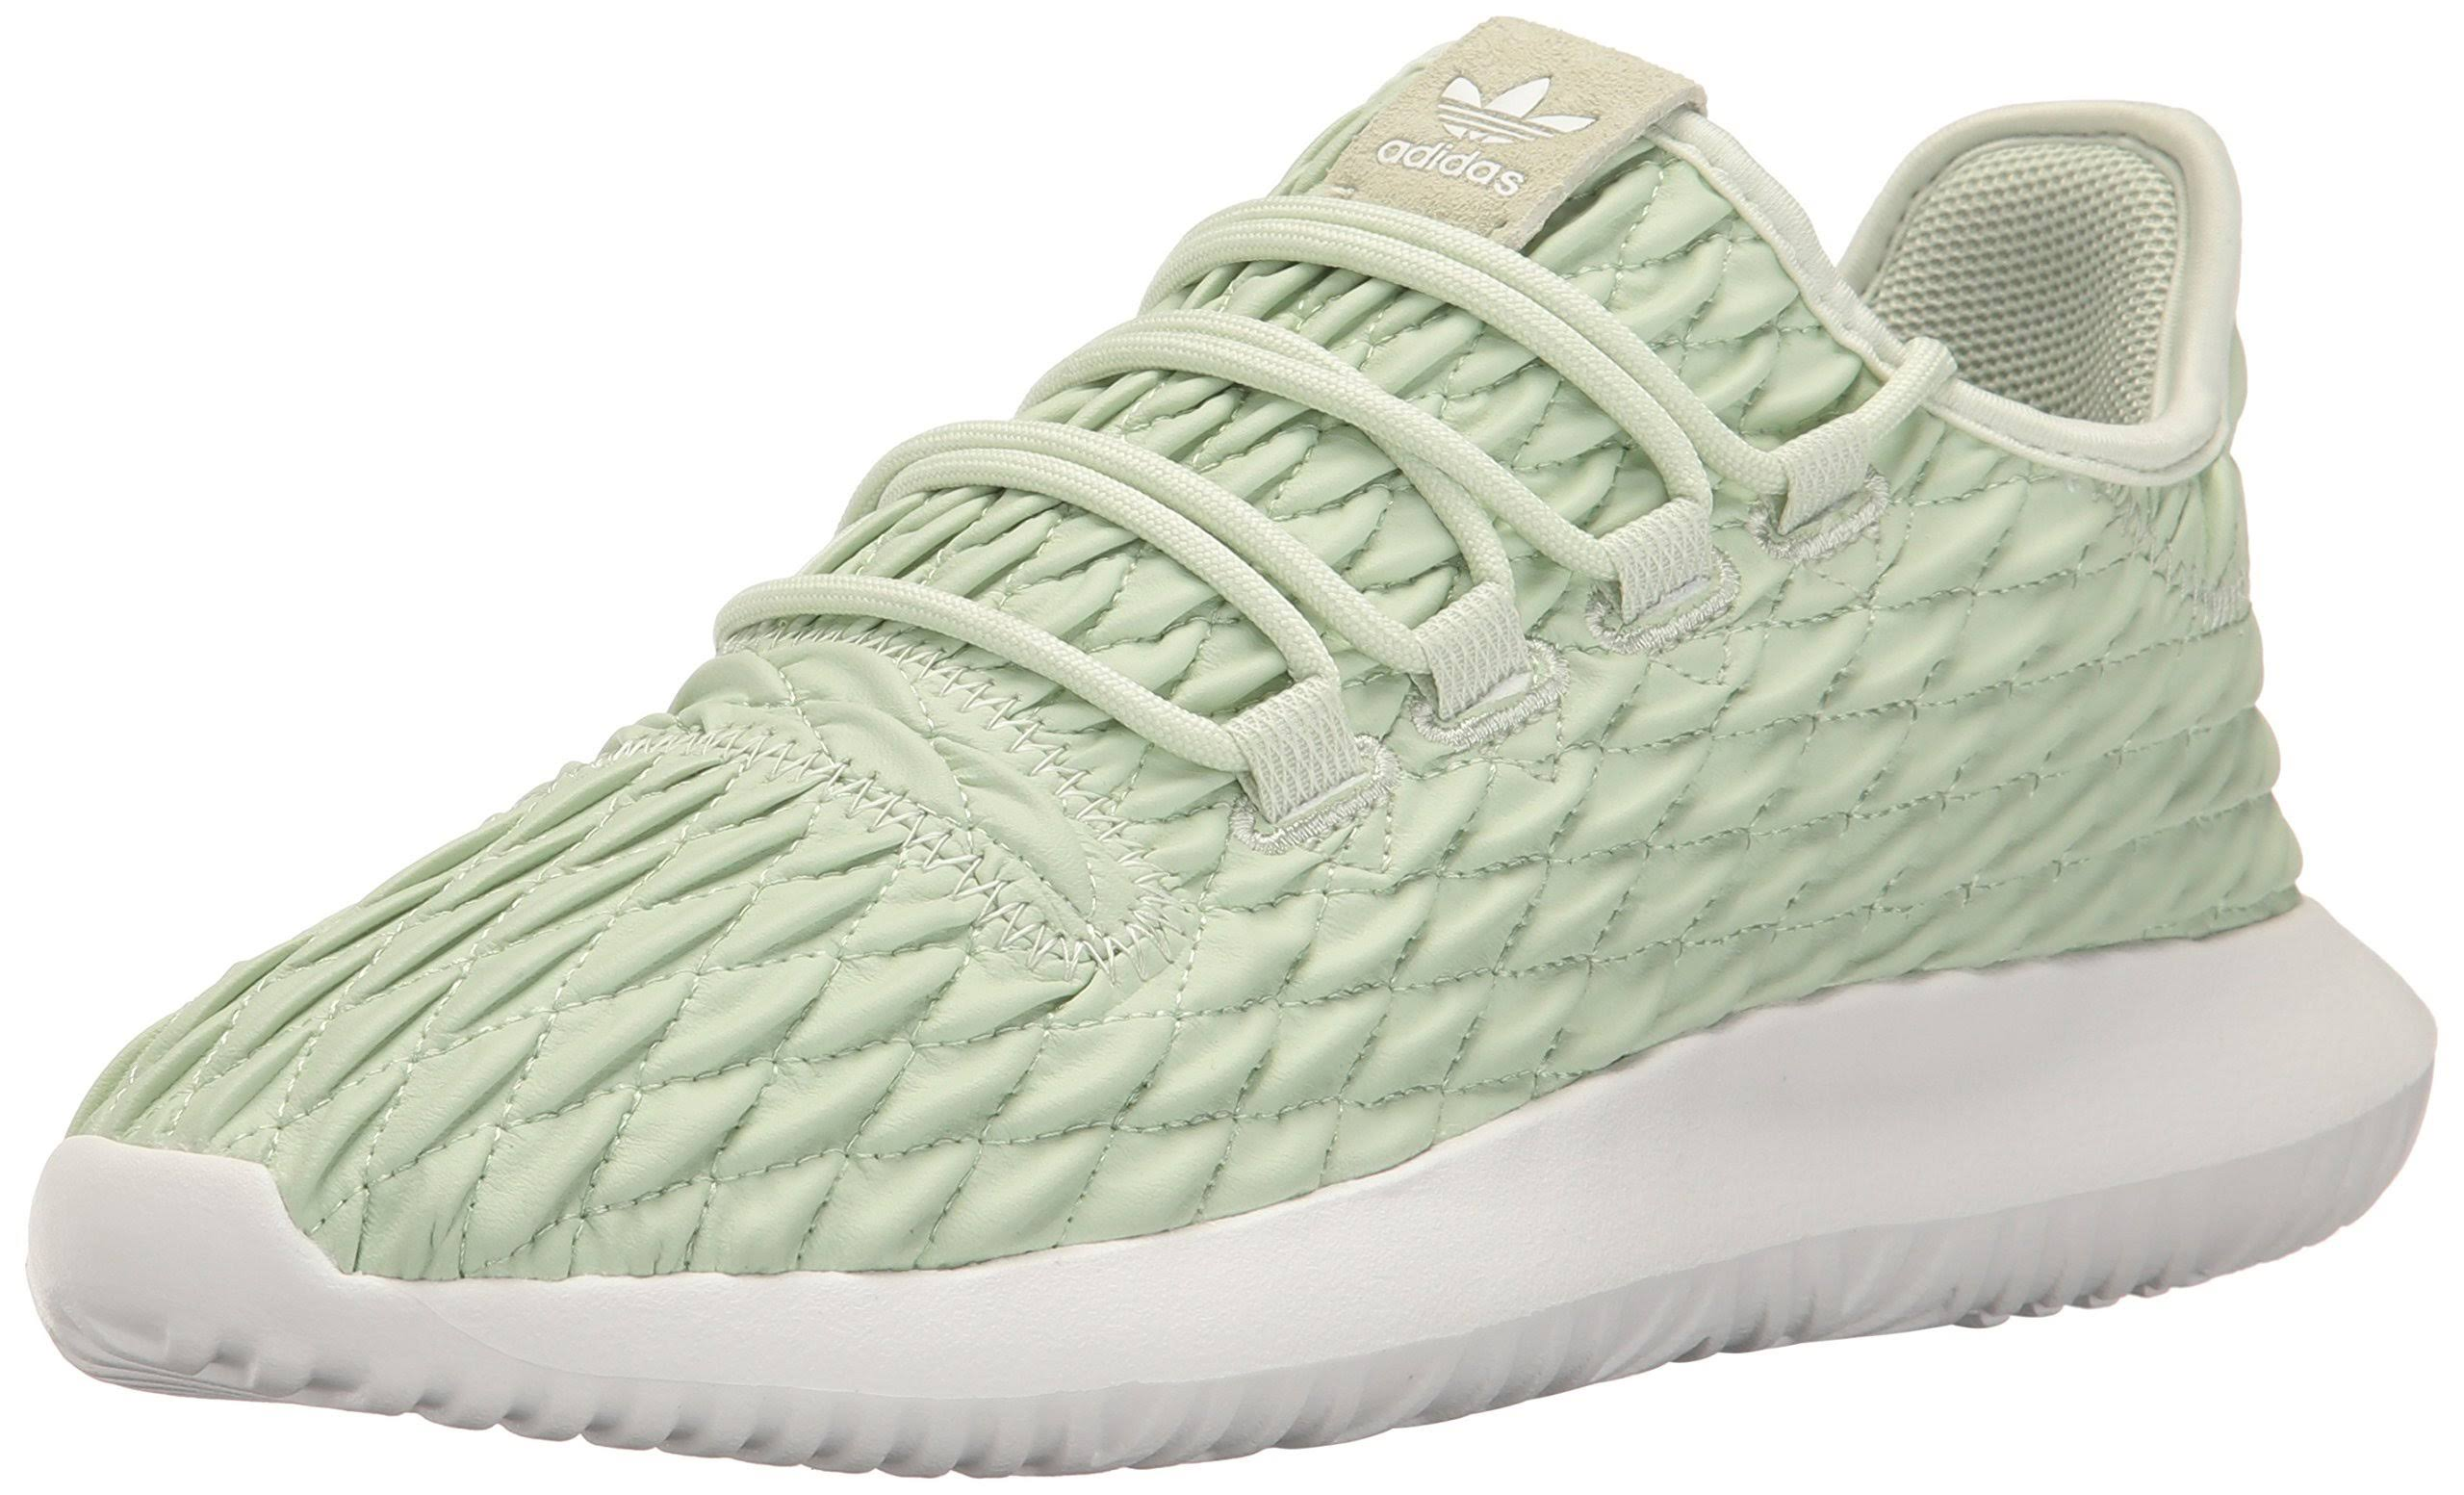 Para Adidas Shadow Green White Bb8867 8 Bronce Tubular Mujer 5 xxqr0wBP